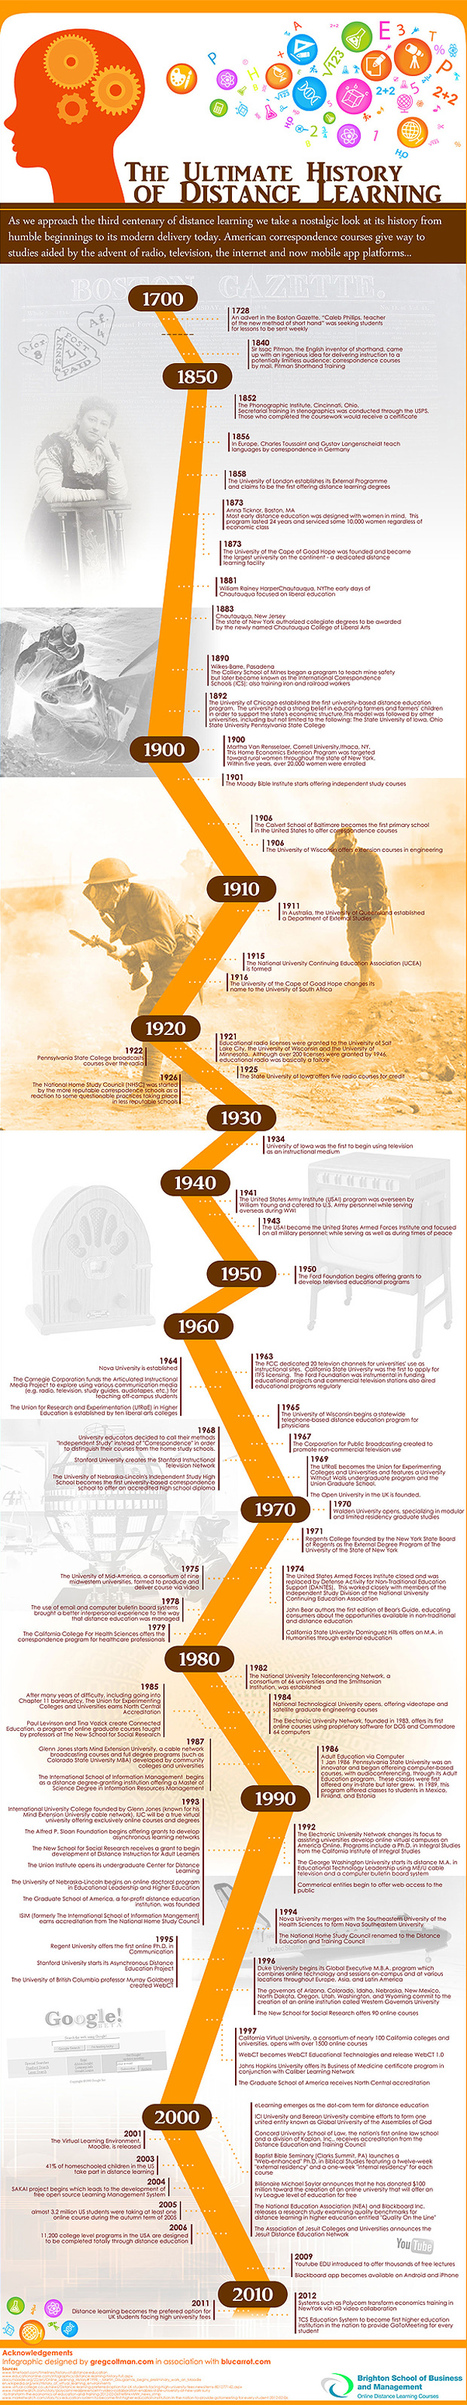 The history of distance learning [Infographic] | ZDNet | Innovations in e-Learning | Scoop.it